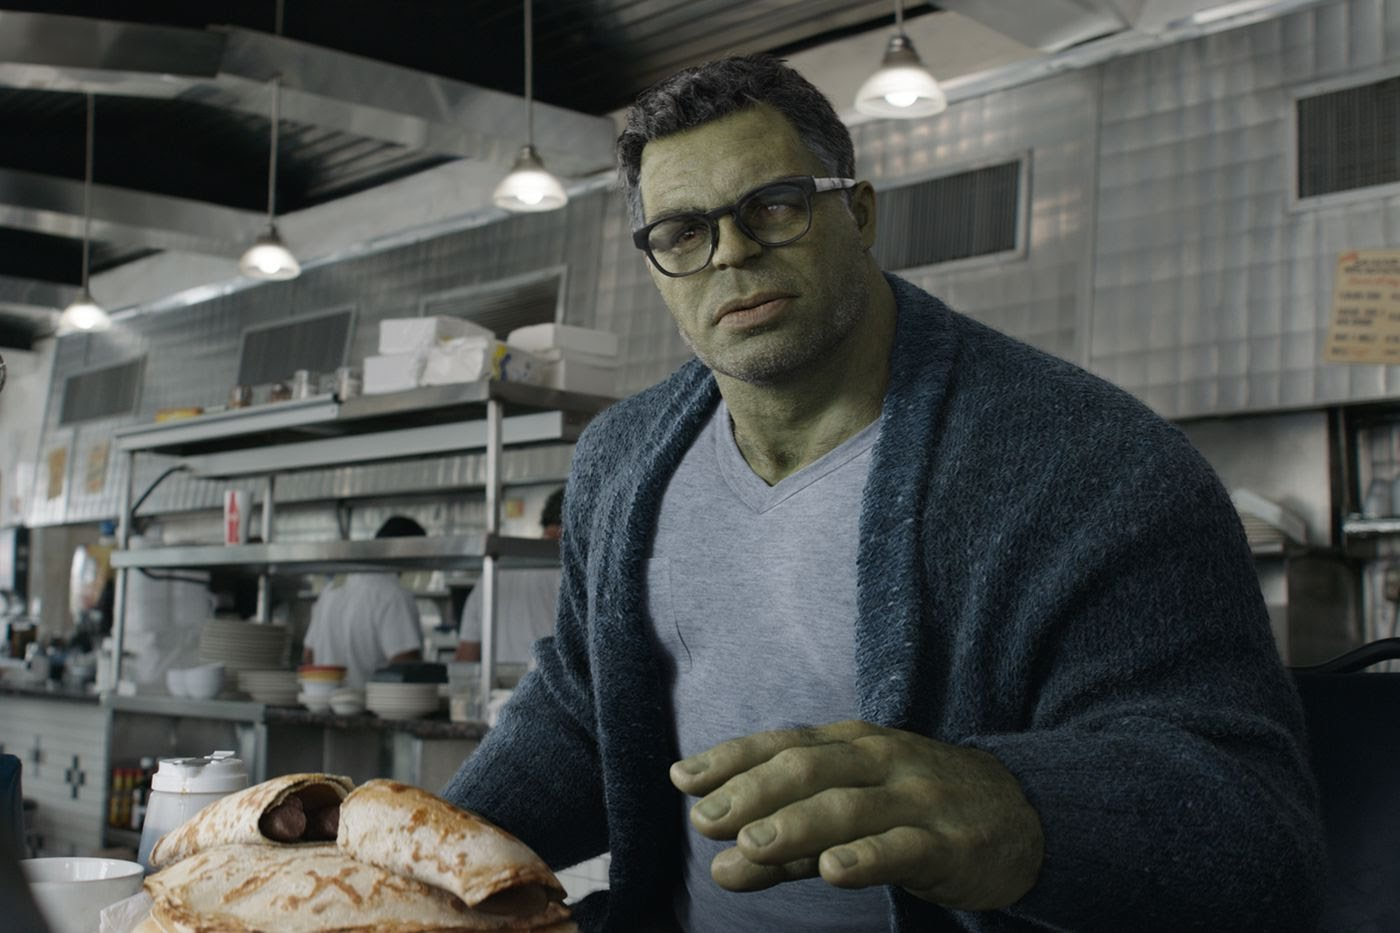 Endgame VFX tech talks about how they got Hulk's look. Pic courtesy: polygon.com